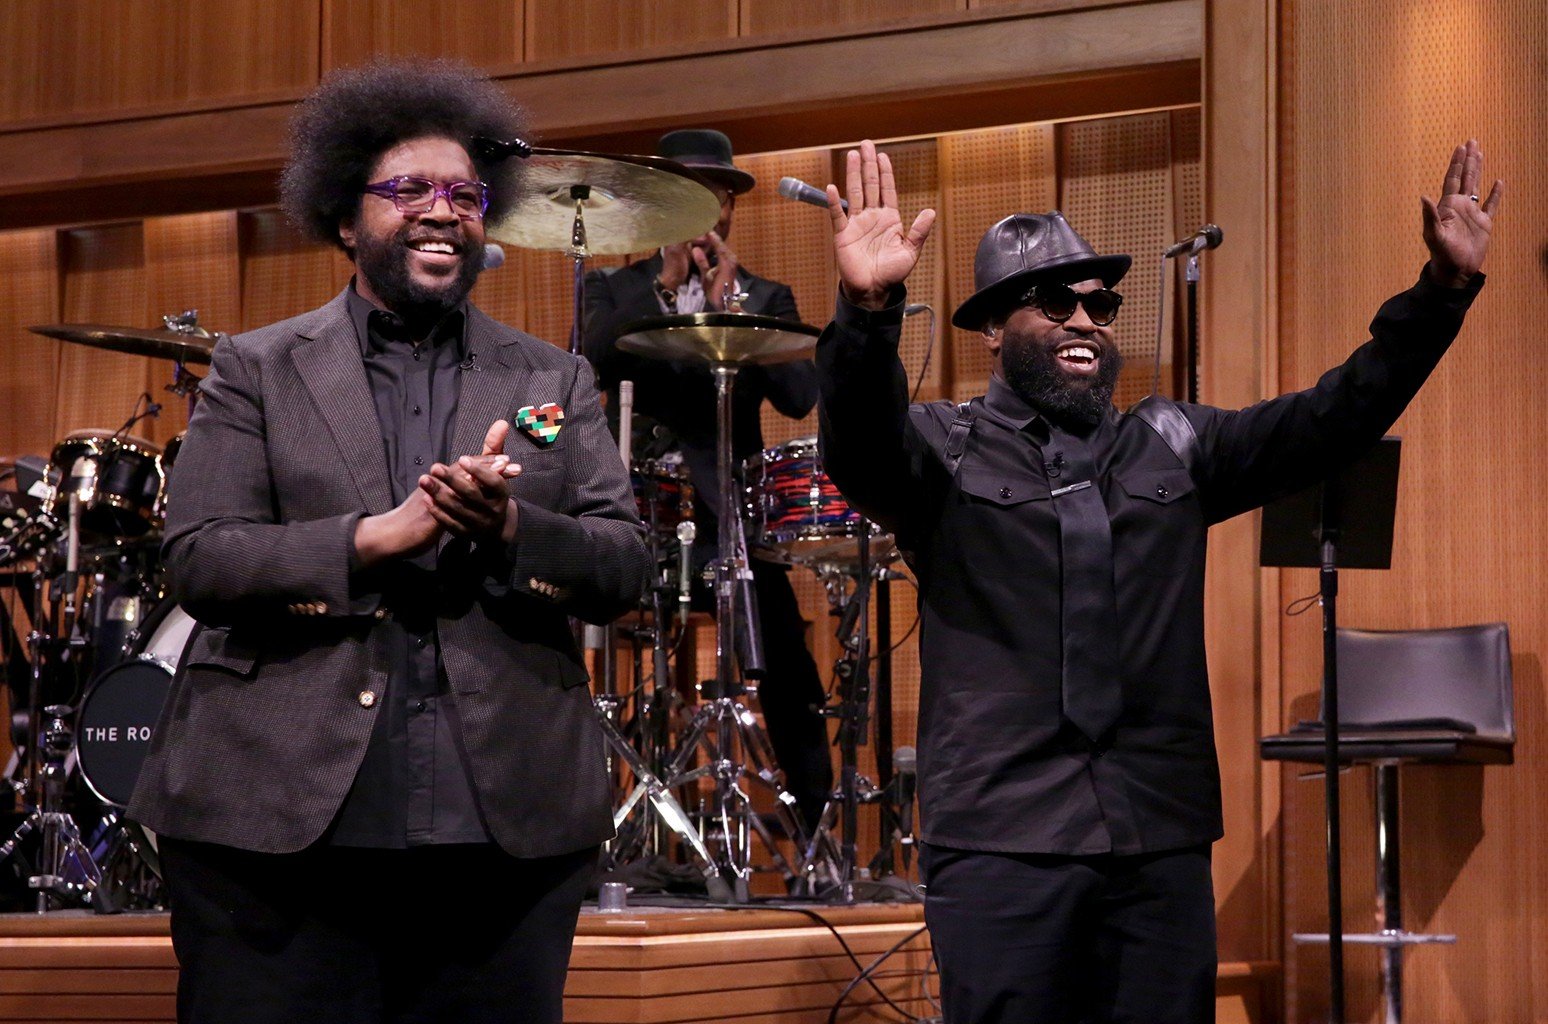 Questlove and Black Thought? of The Roots on Jan. 31, 2017.